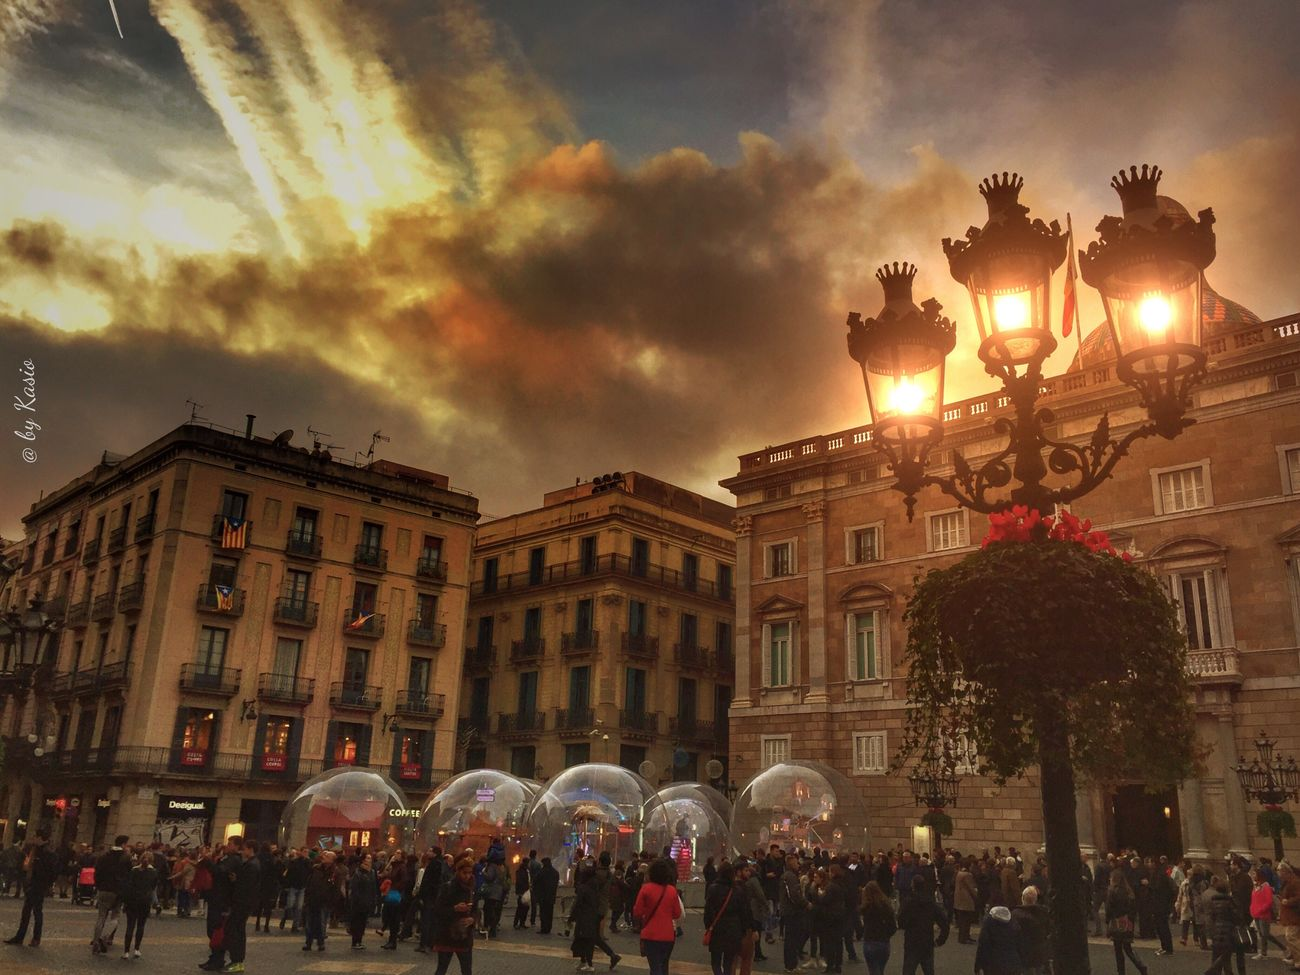 Building Exterior Architecture Large Group Of People Sky Built Structure Cloud - Sky Illuminated City Christmas Market Capture The Moment EyeEm Best Shots EyeEm Best Edits Sky_collection City Street Sunset